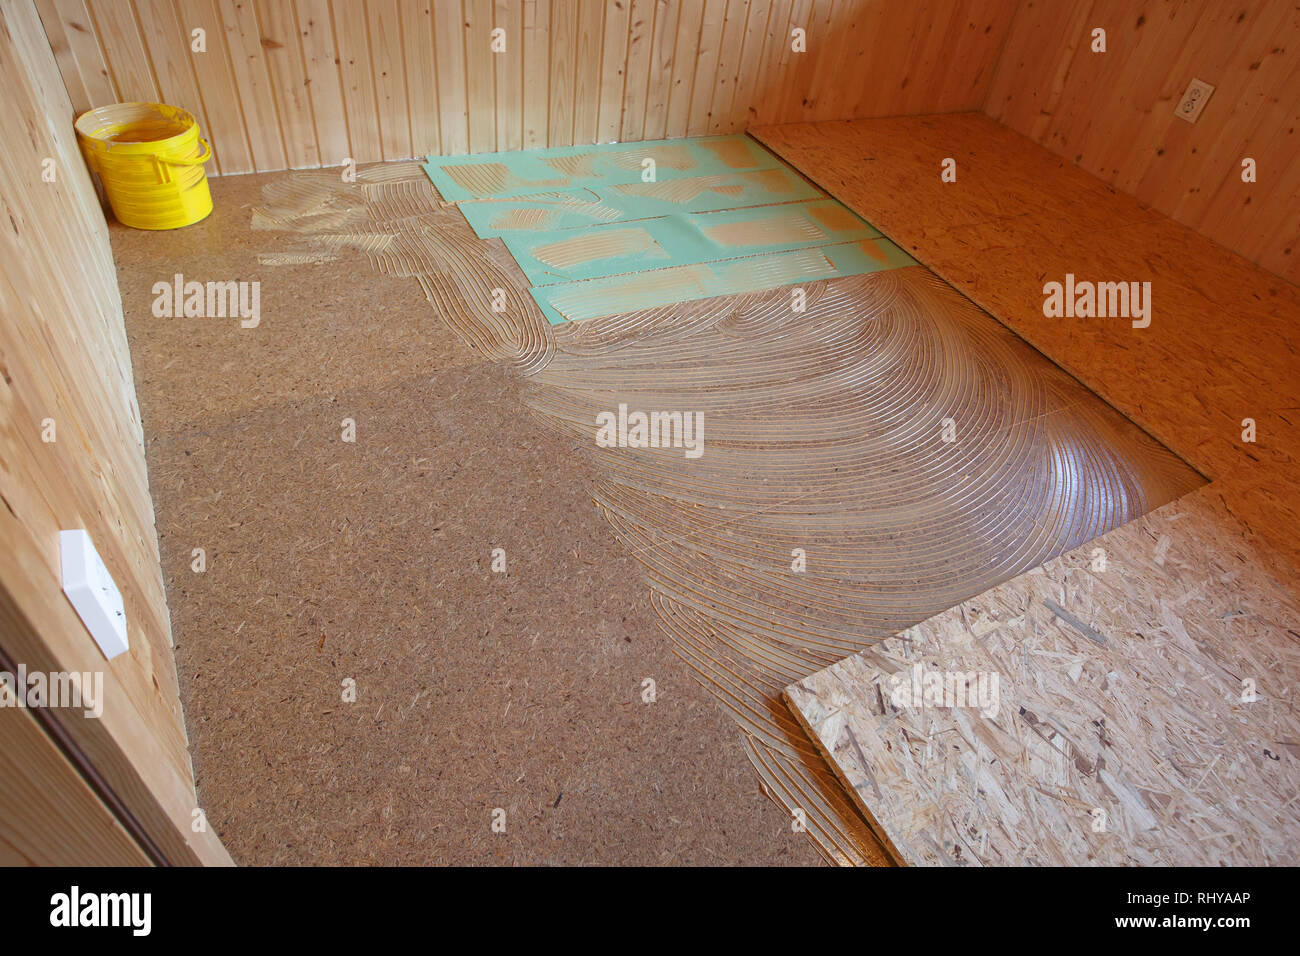 Laying of new parquet flooring in progress, adhesive primer spread on old floor. Professional work in progress, home improvement and renovation, carpe - Stock Image